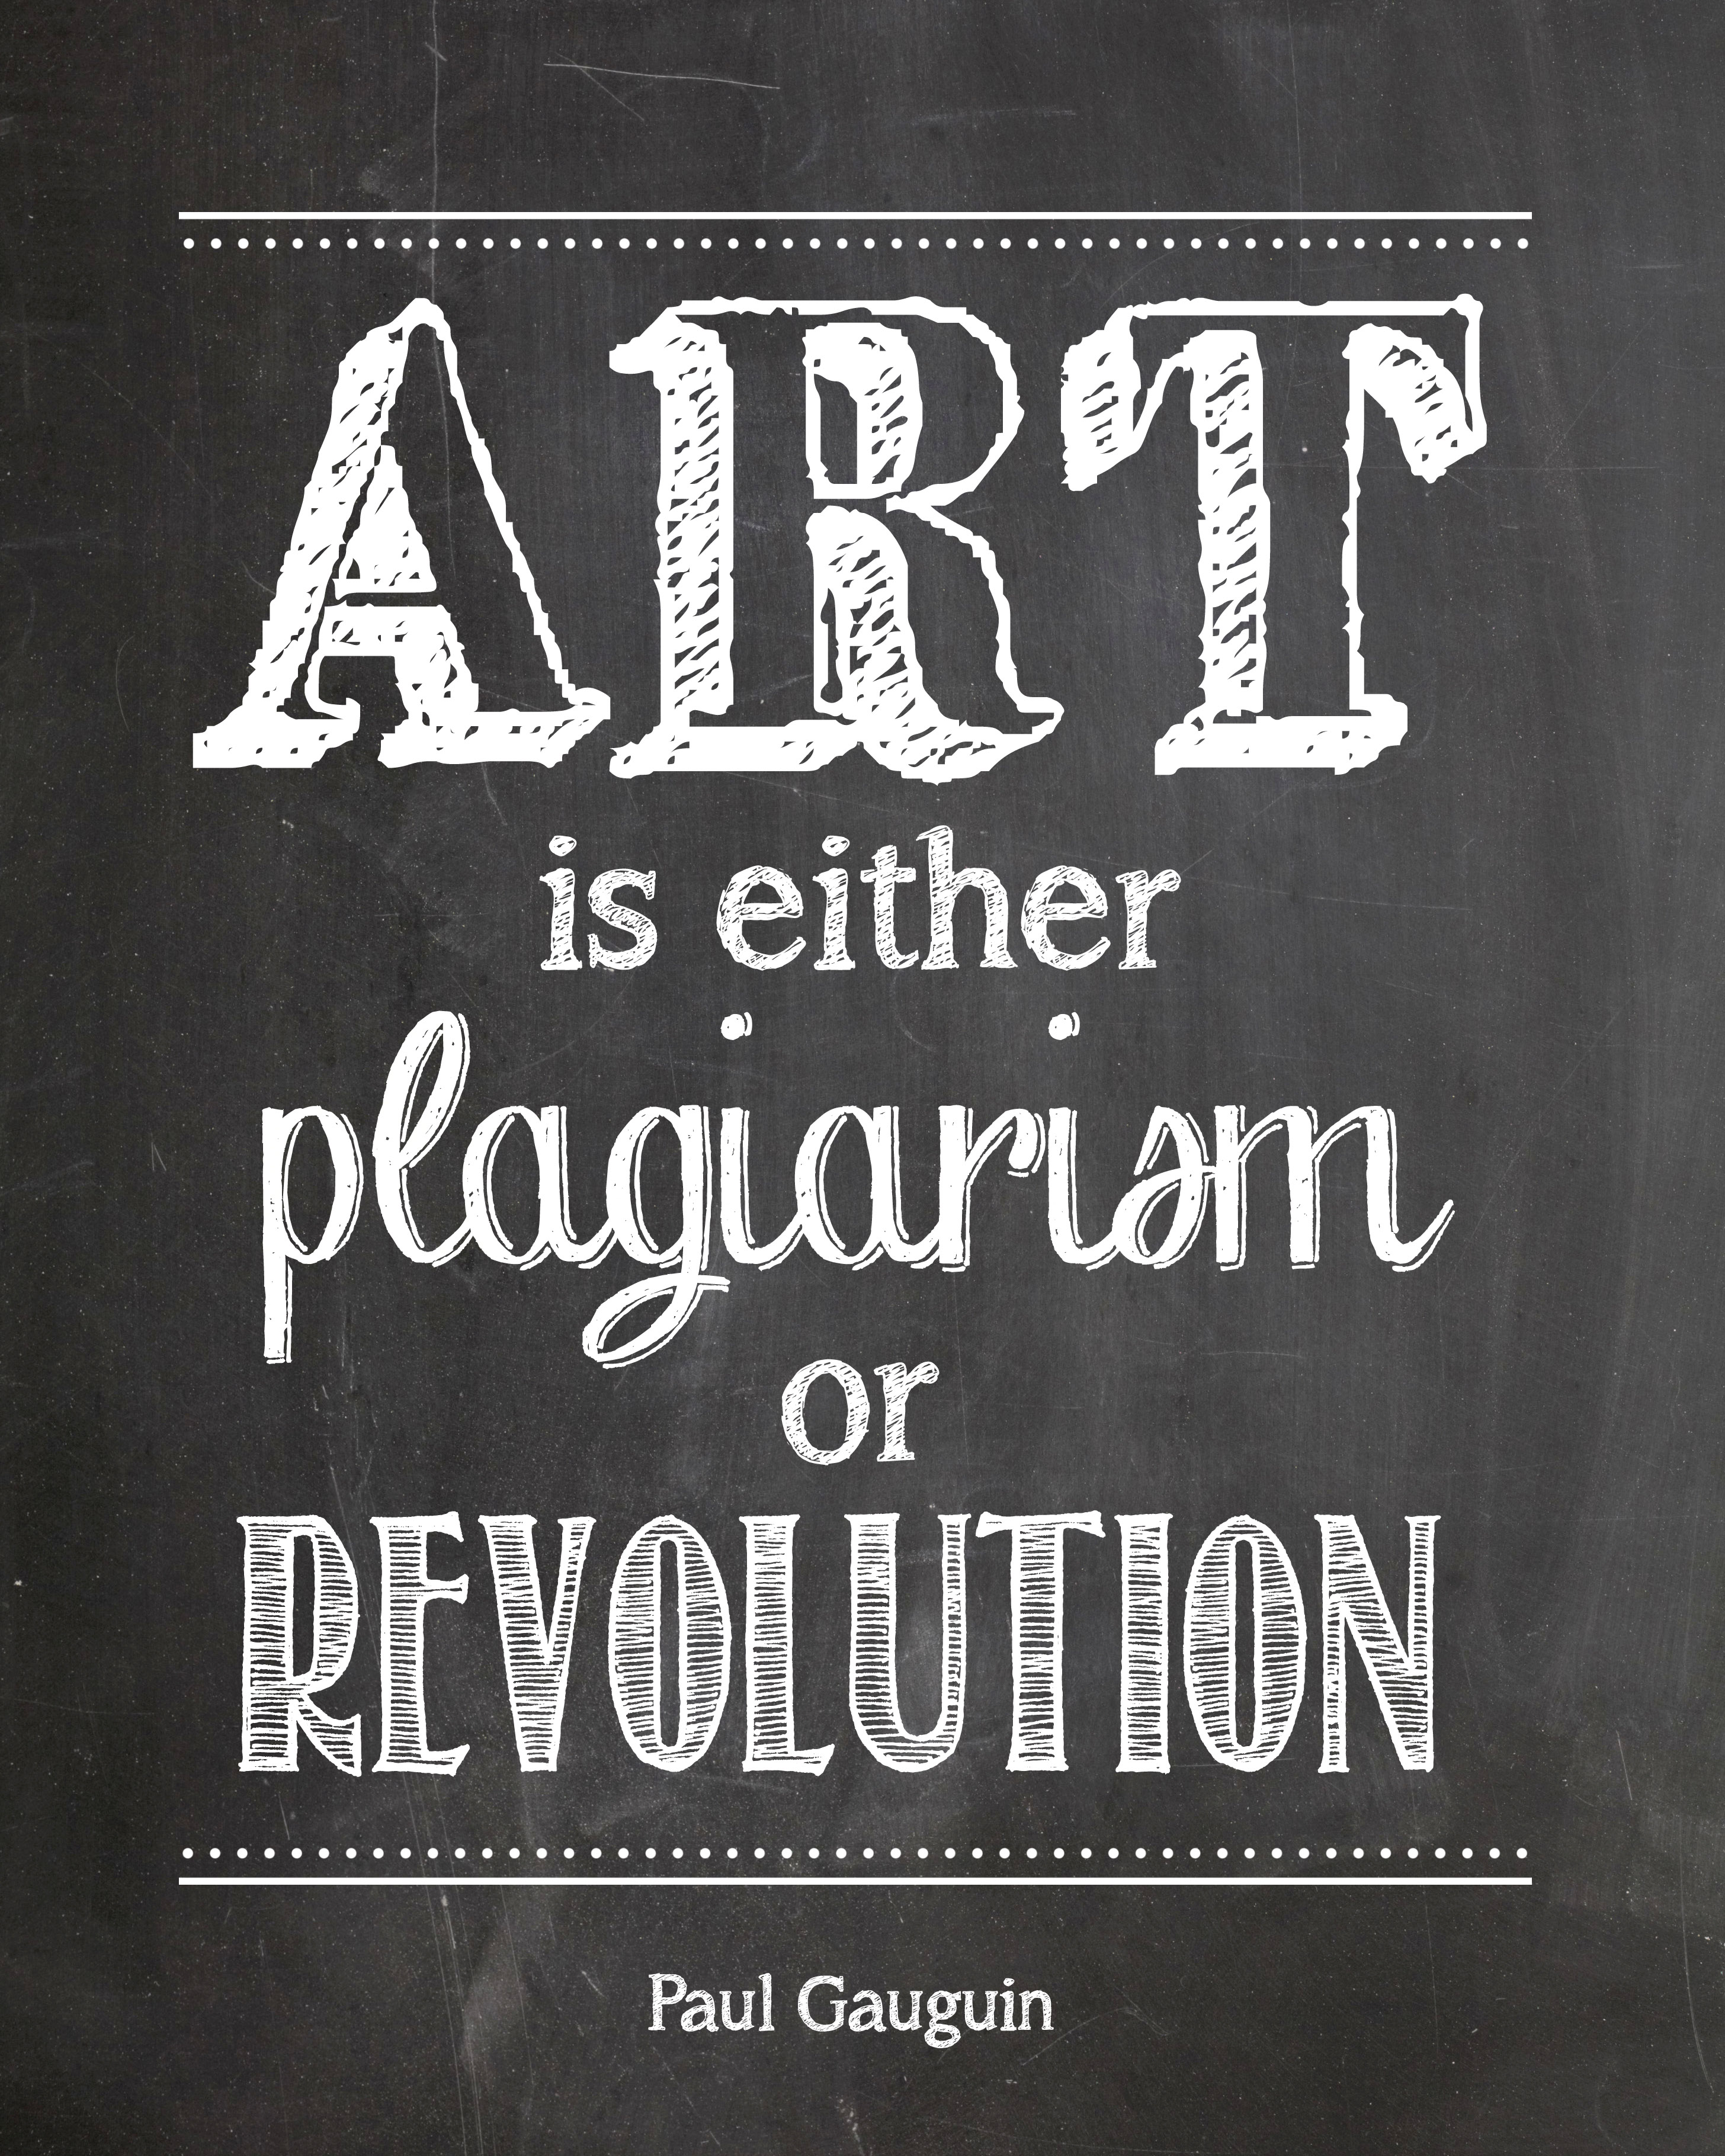 art is plagairism printable